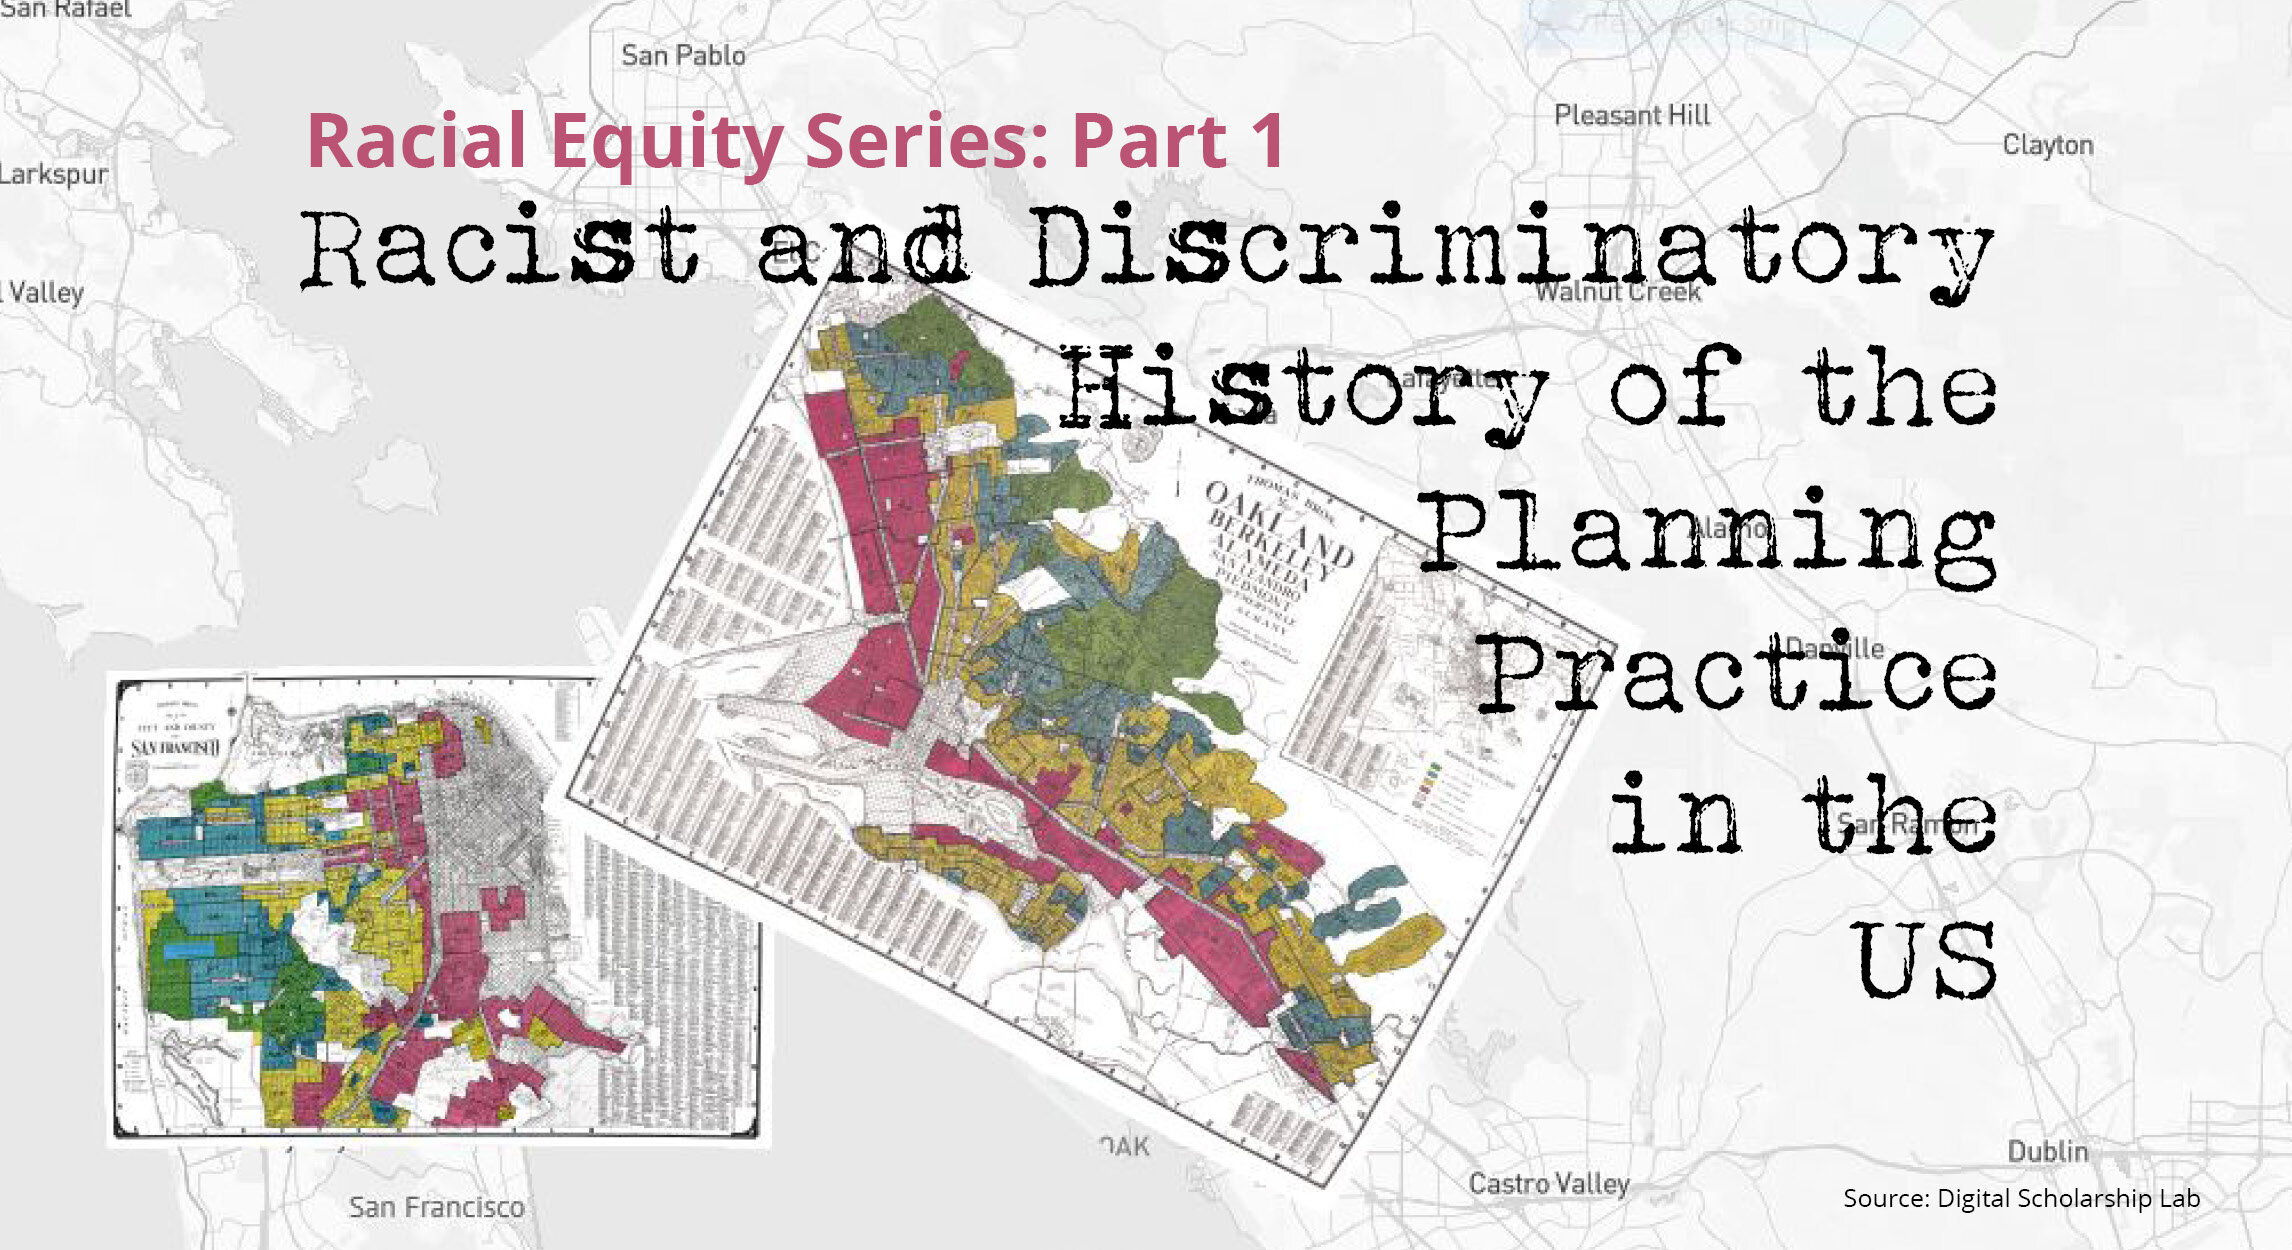 Racial Equity Series Part 1 M Group Collection by stuff you missed in history class. racial equity series part 1 m group